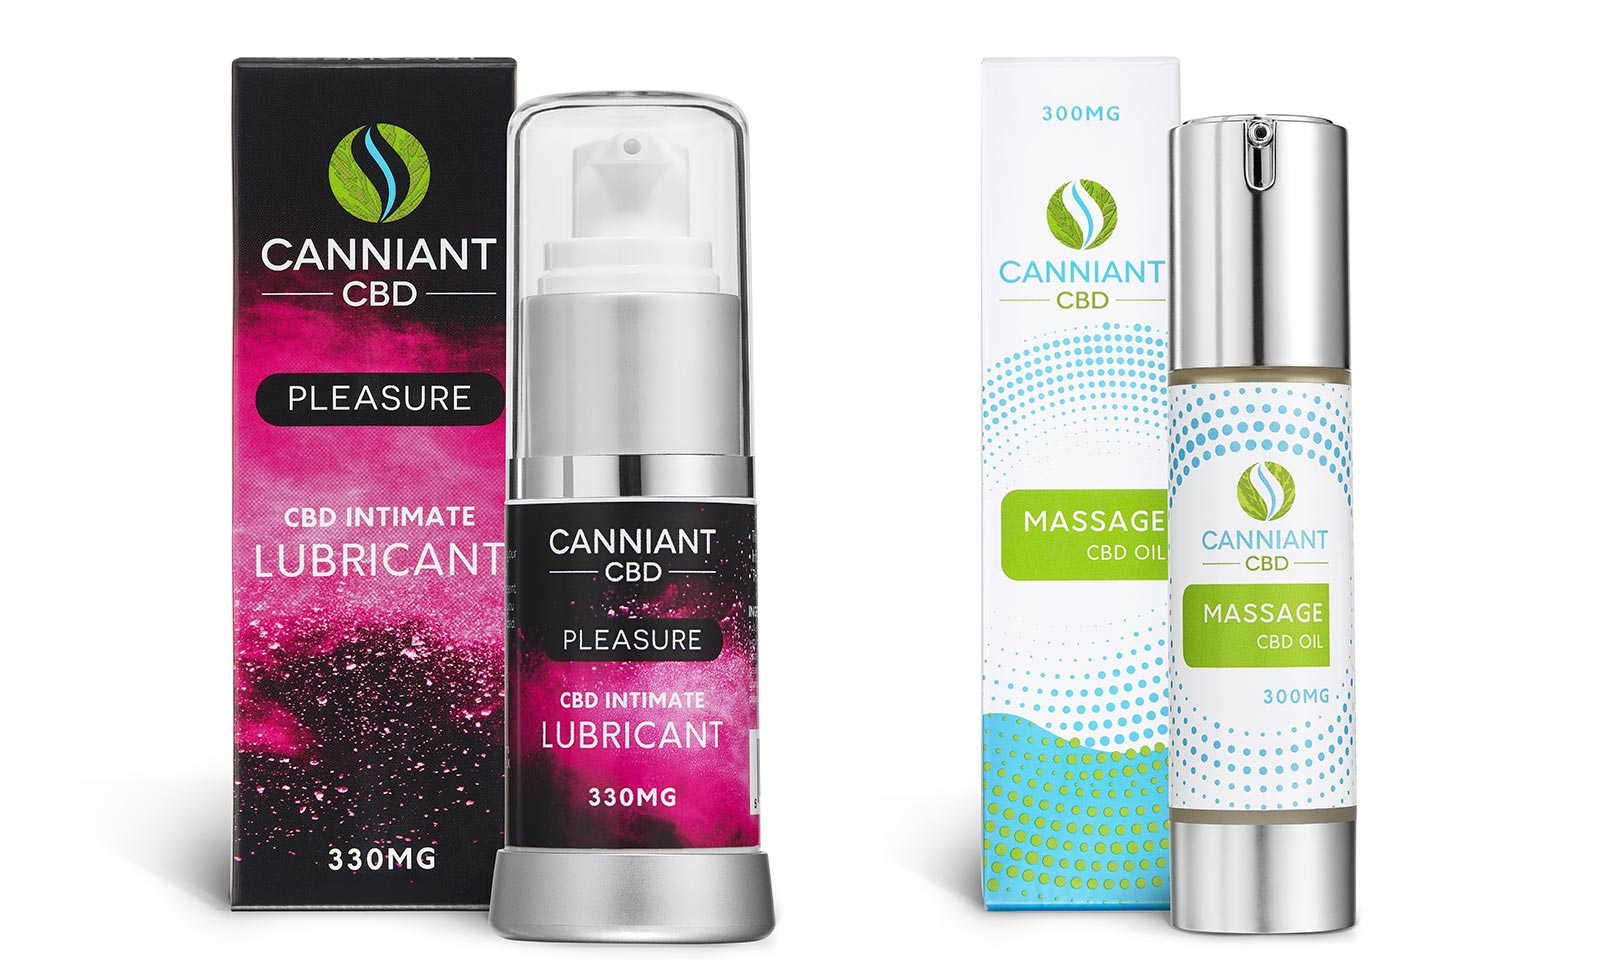 Canniant CBD Lubricant Oil Packaging Design